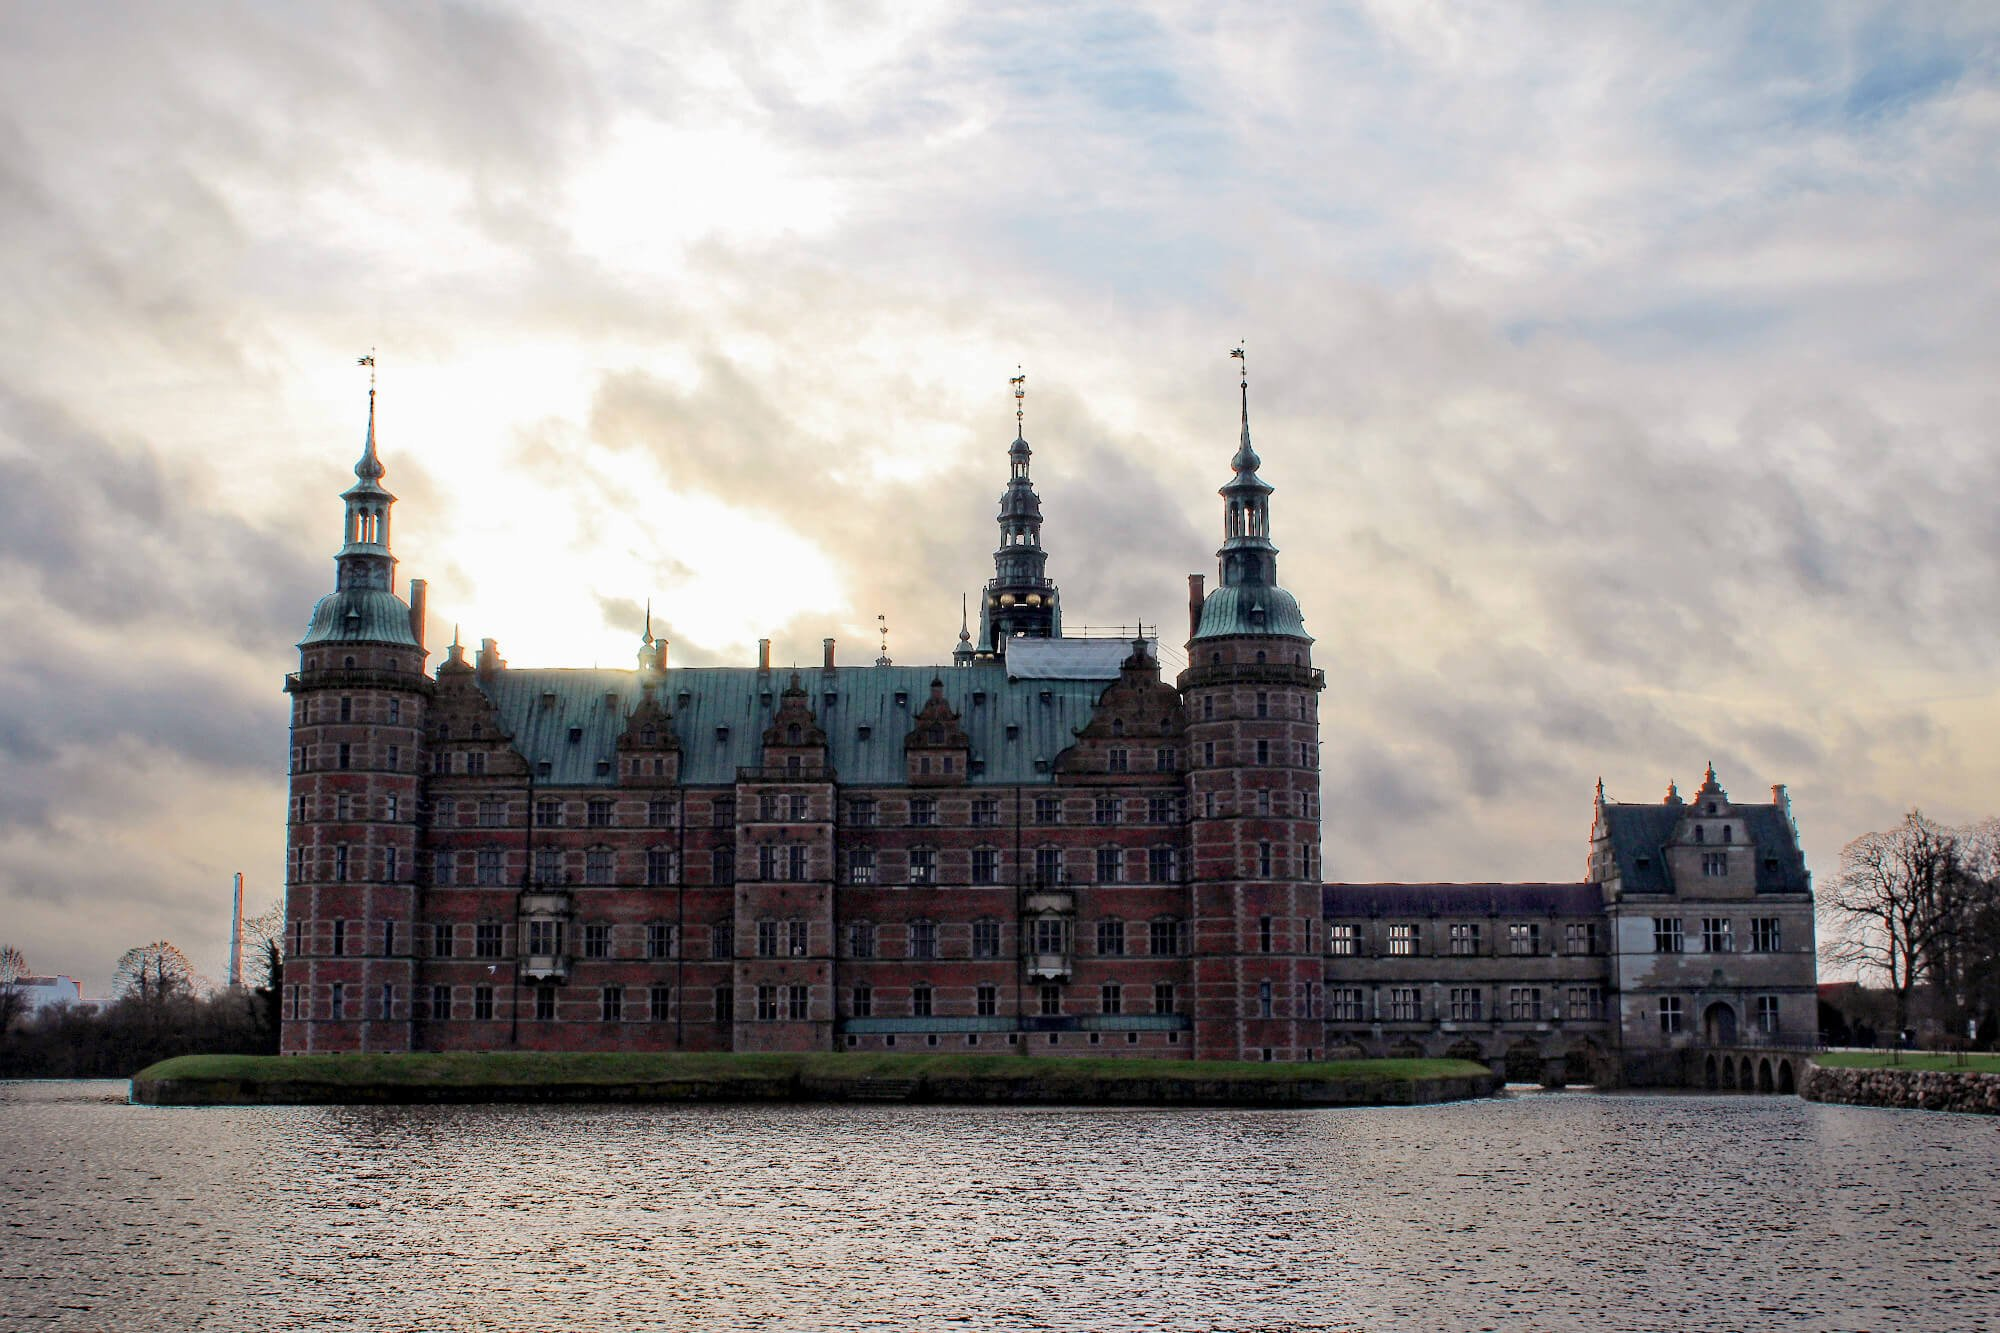 Fairytale Frederiksborg Castle outside of Copenhagen, Denmark, in the winter.